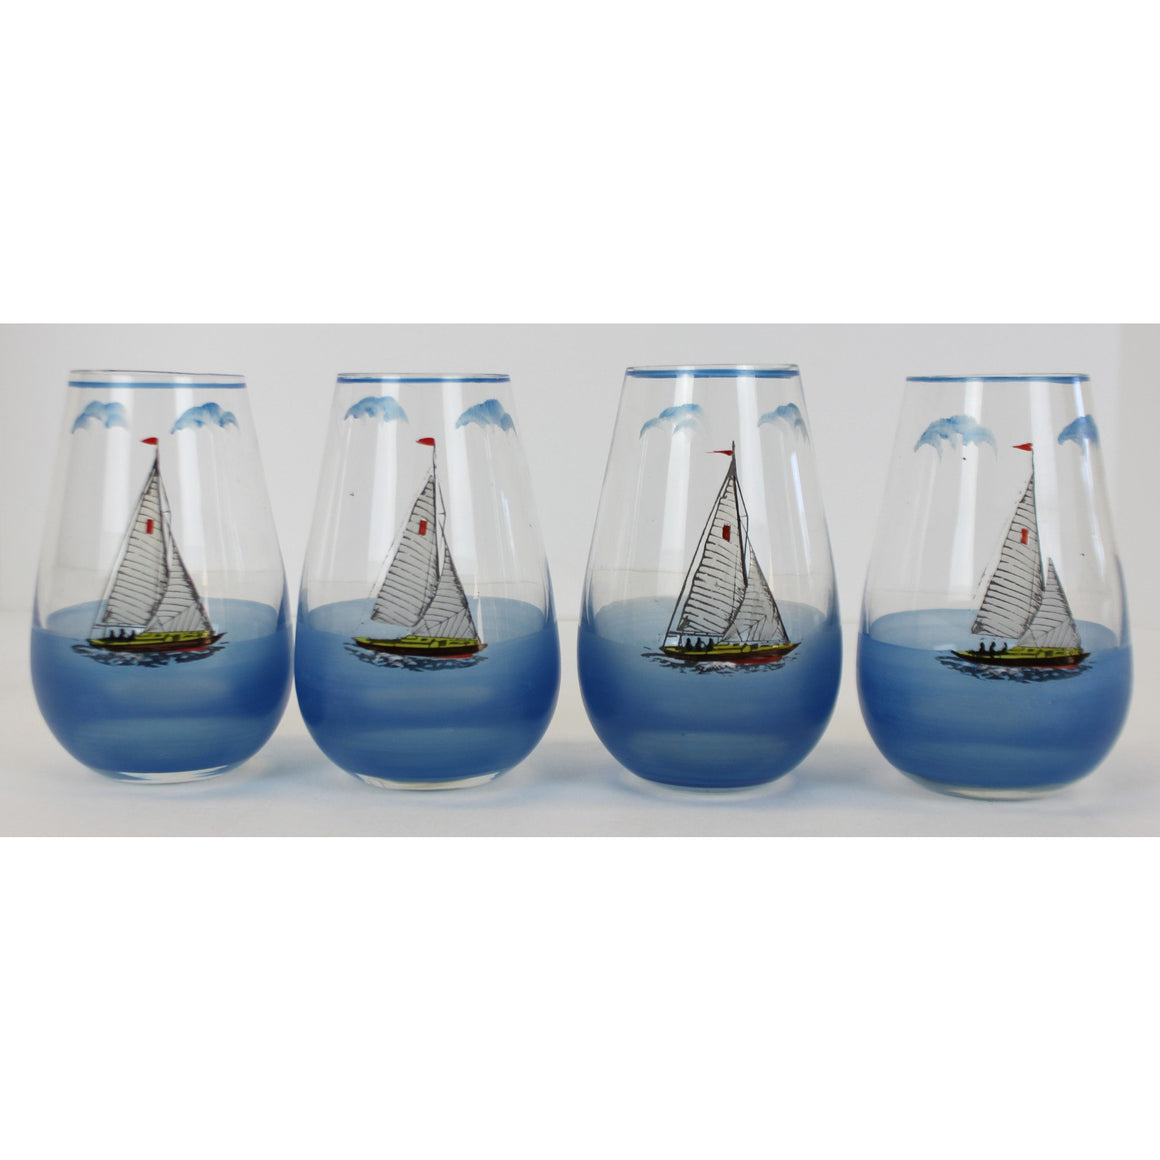 Set of 4 Hand-Painted Sailboat Glasses